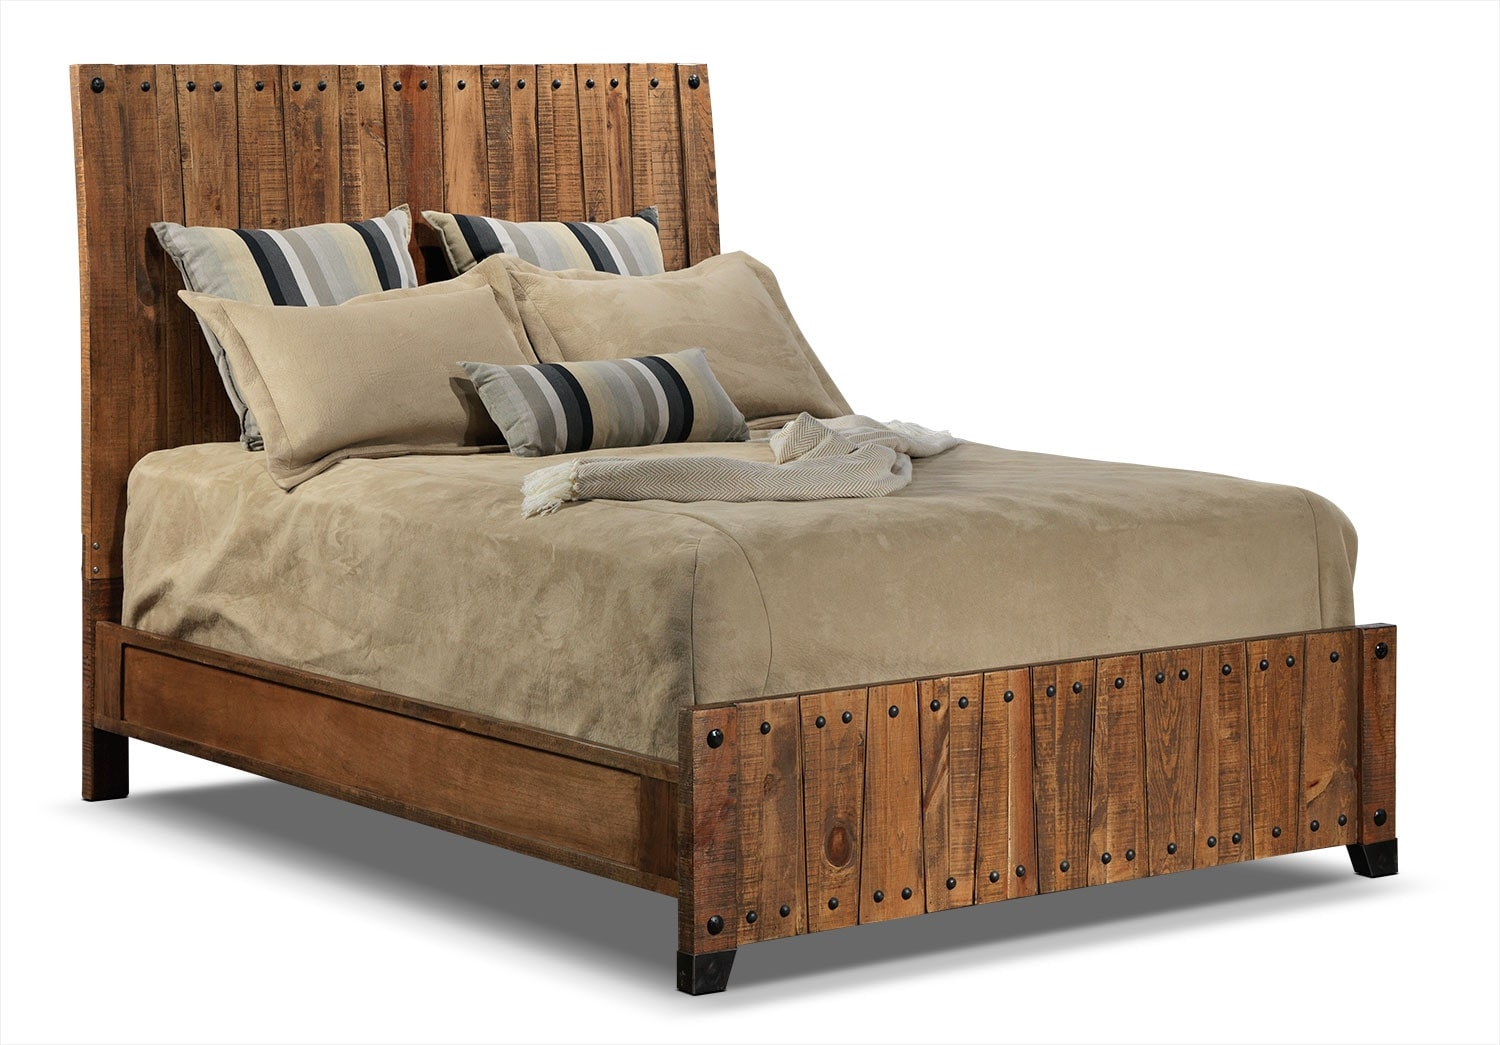 Maya King Bed - Rustic Pine